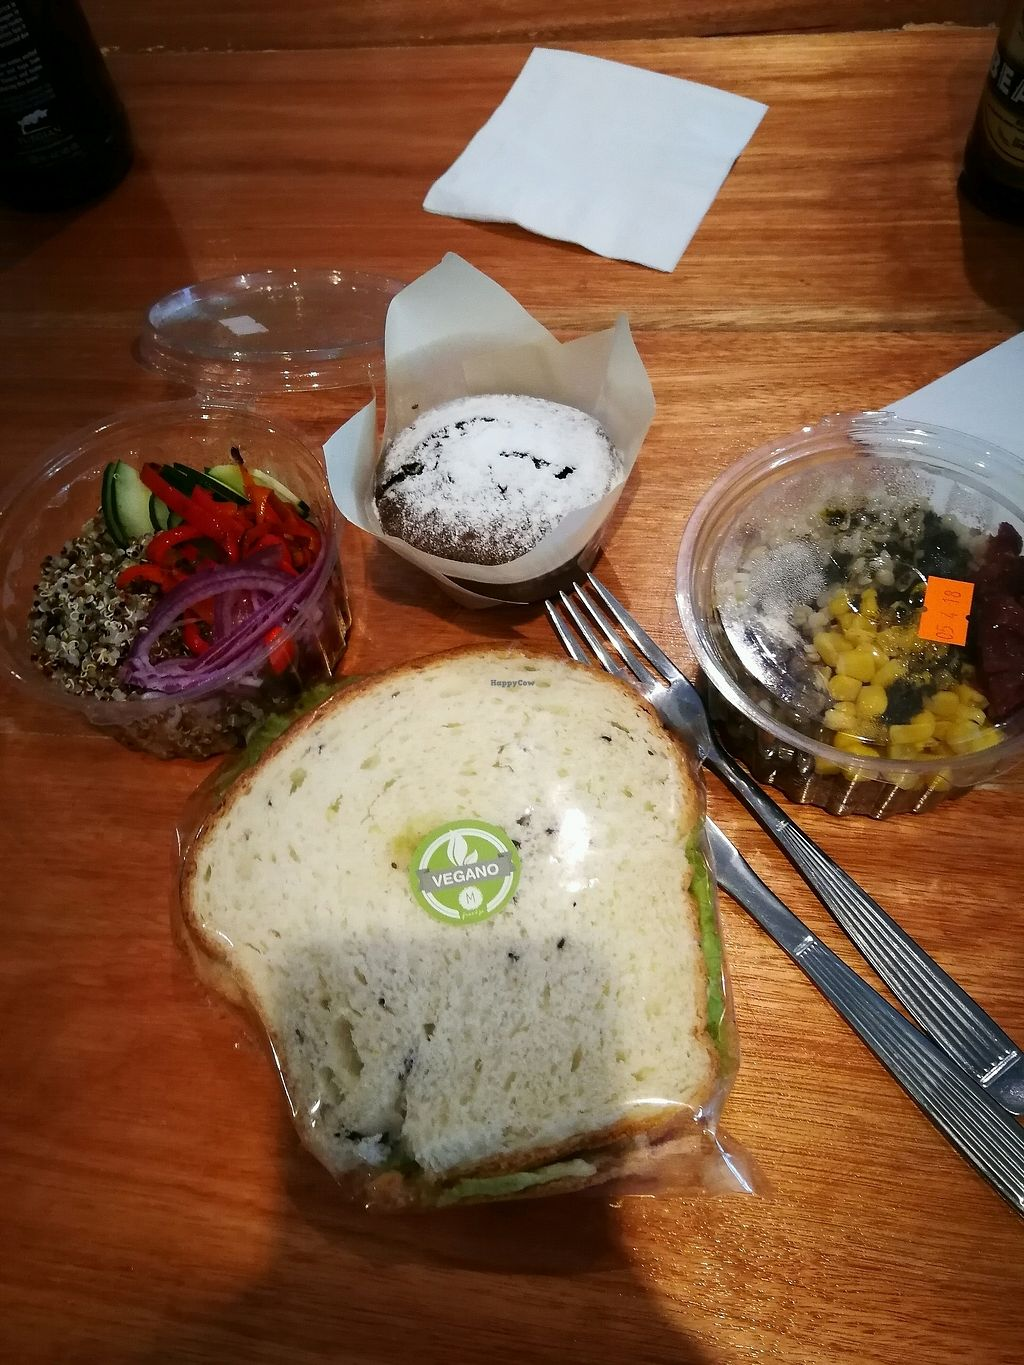 """Photo of Marcopolo Freelife  by <a href=""""/members/profile/Lucylu"""">Lucylu</a> <br/>vegan lunch  <br/> April 15, 2018  - <a href='/contact/abuse/image/53803/386392'>Report</a>"""